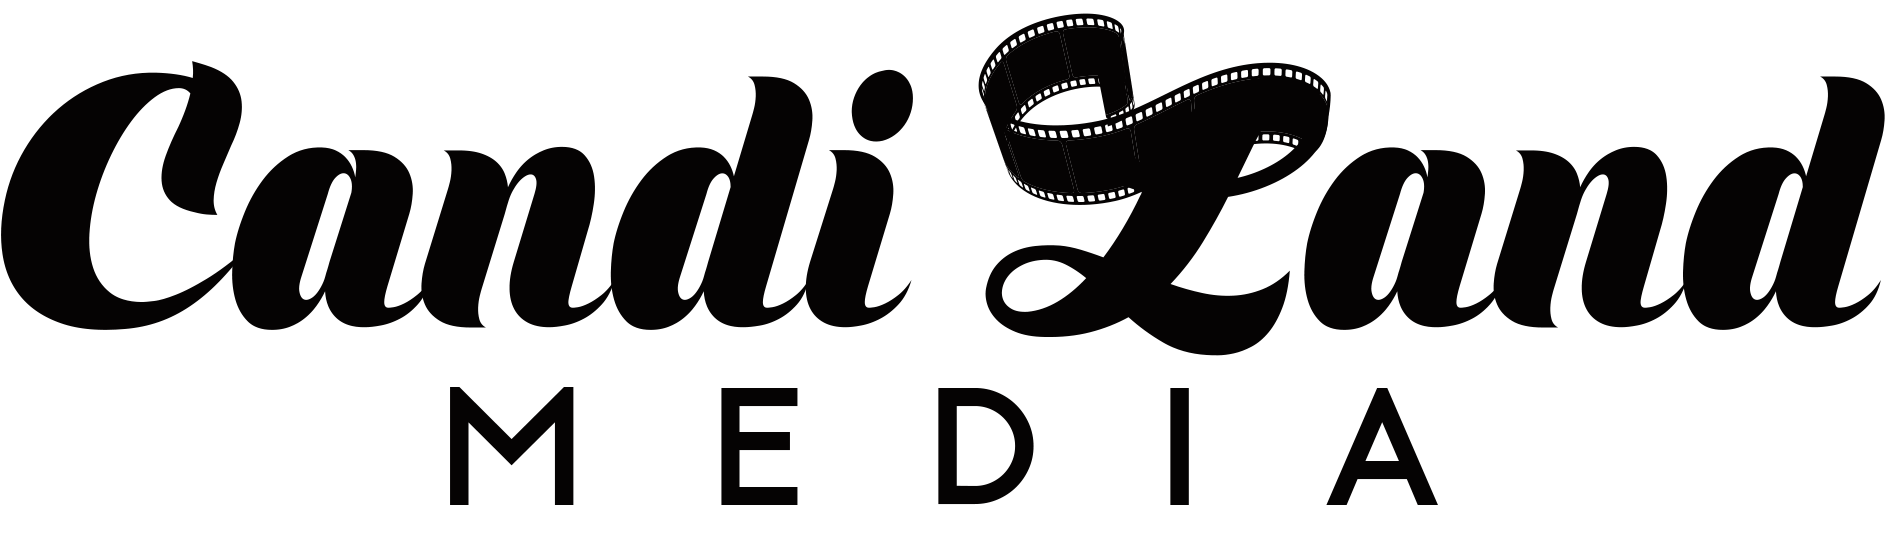 CANDI LAND MEDIA LOGO.png